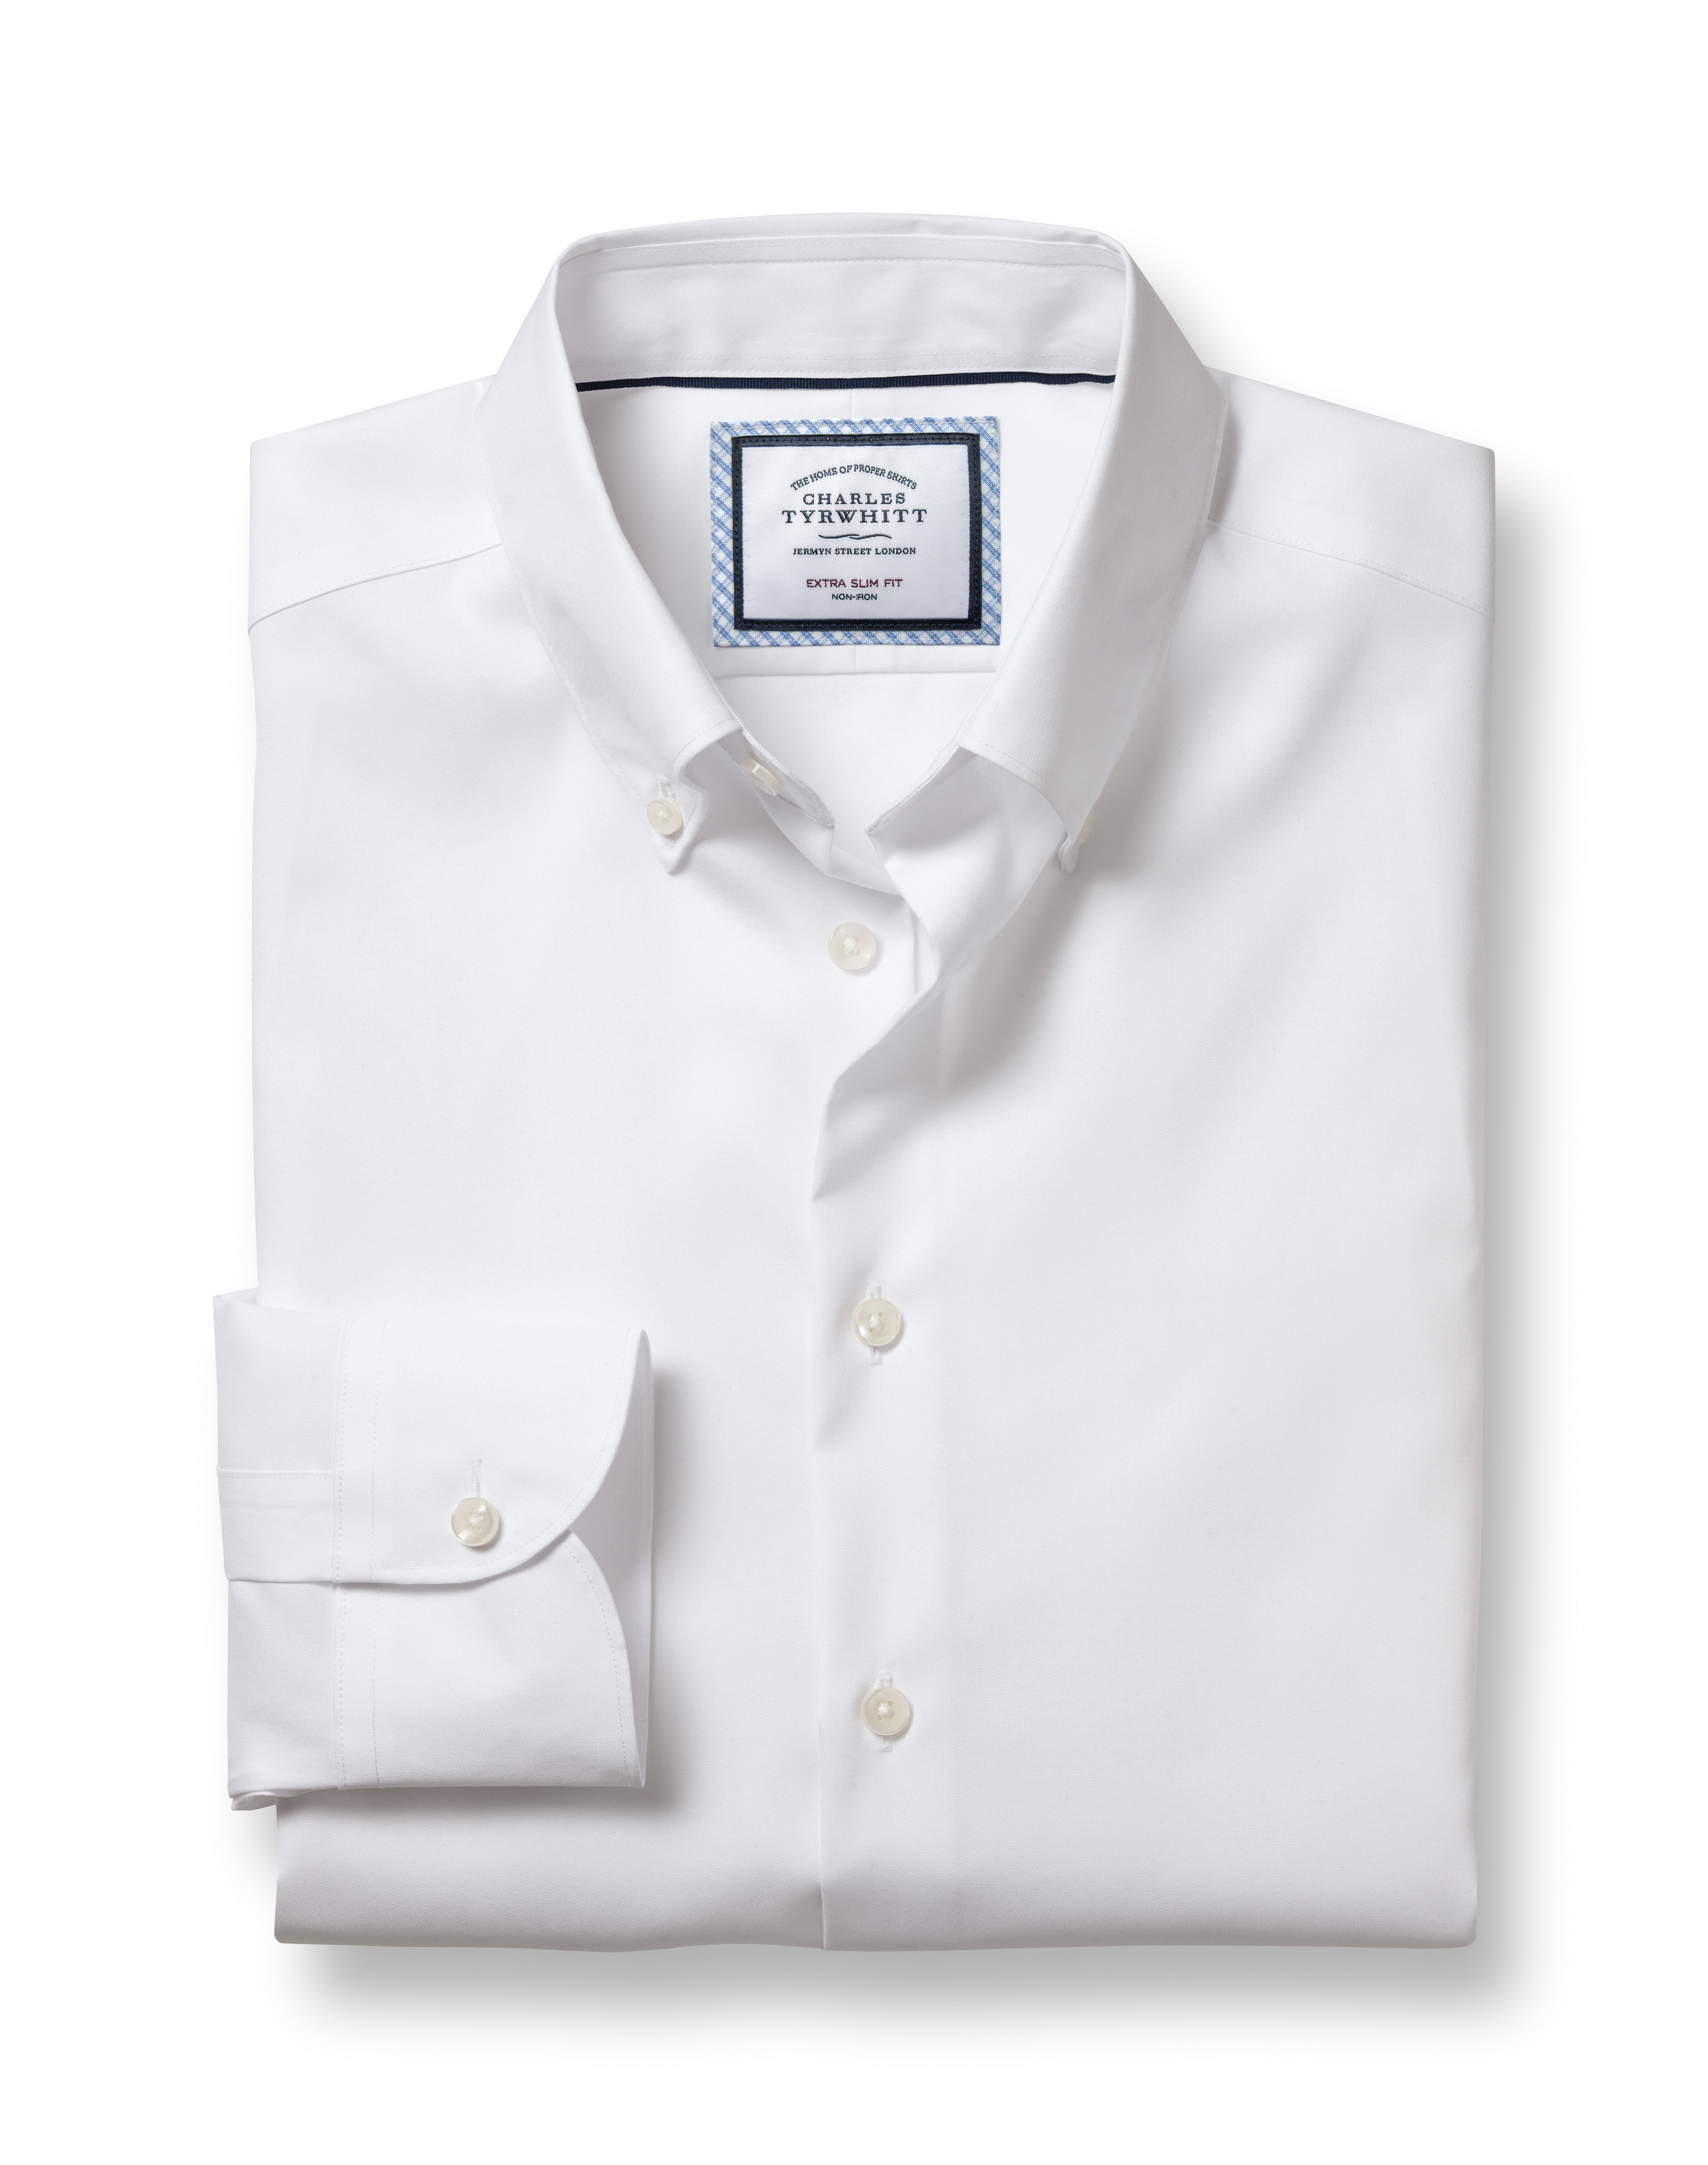 Slim Fit Button-Down Business Casual Non-Iron White Cotton Formal Shirt Single Cuff Size 17.5/35 by